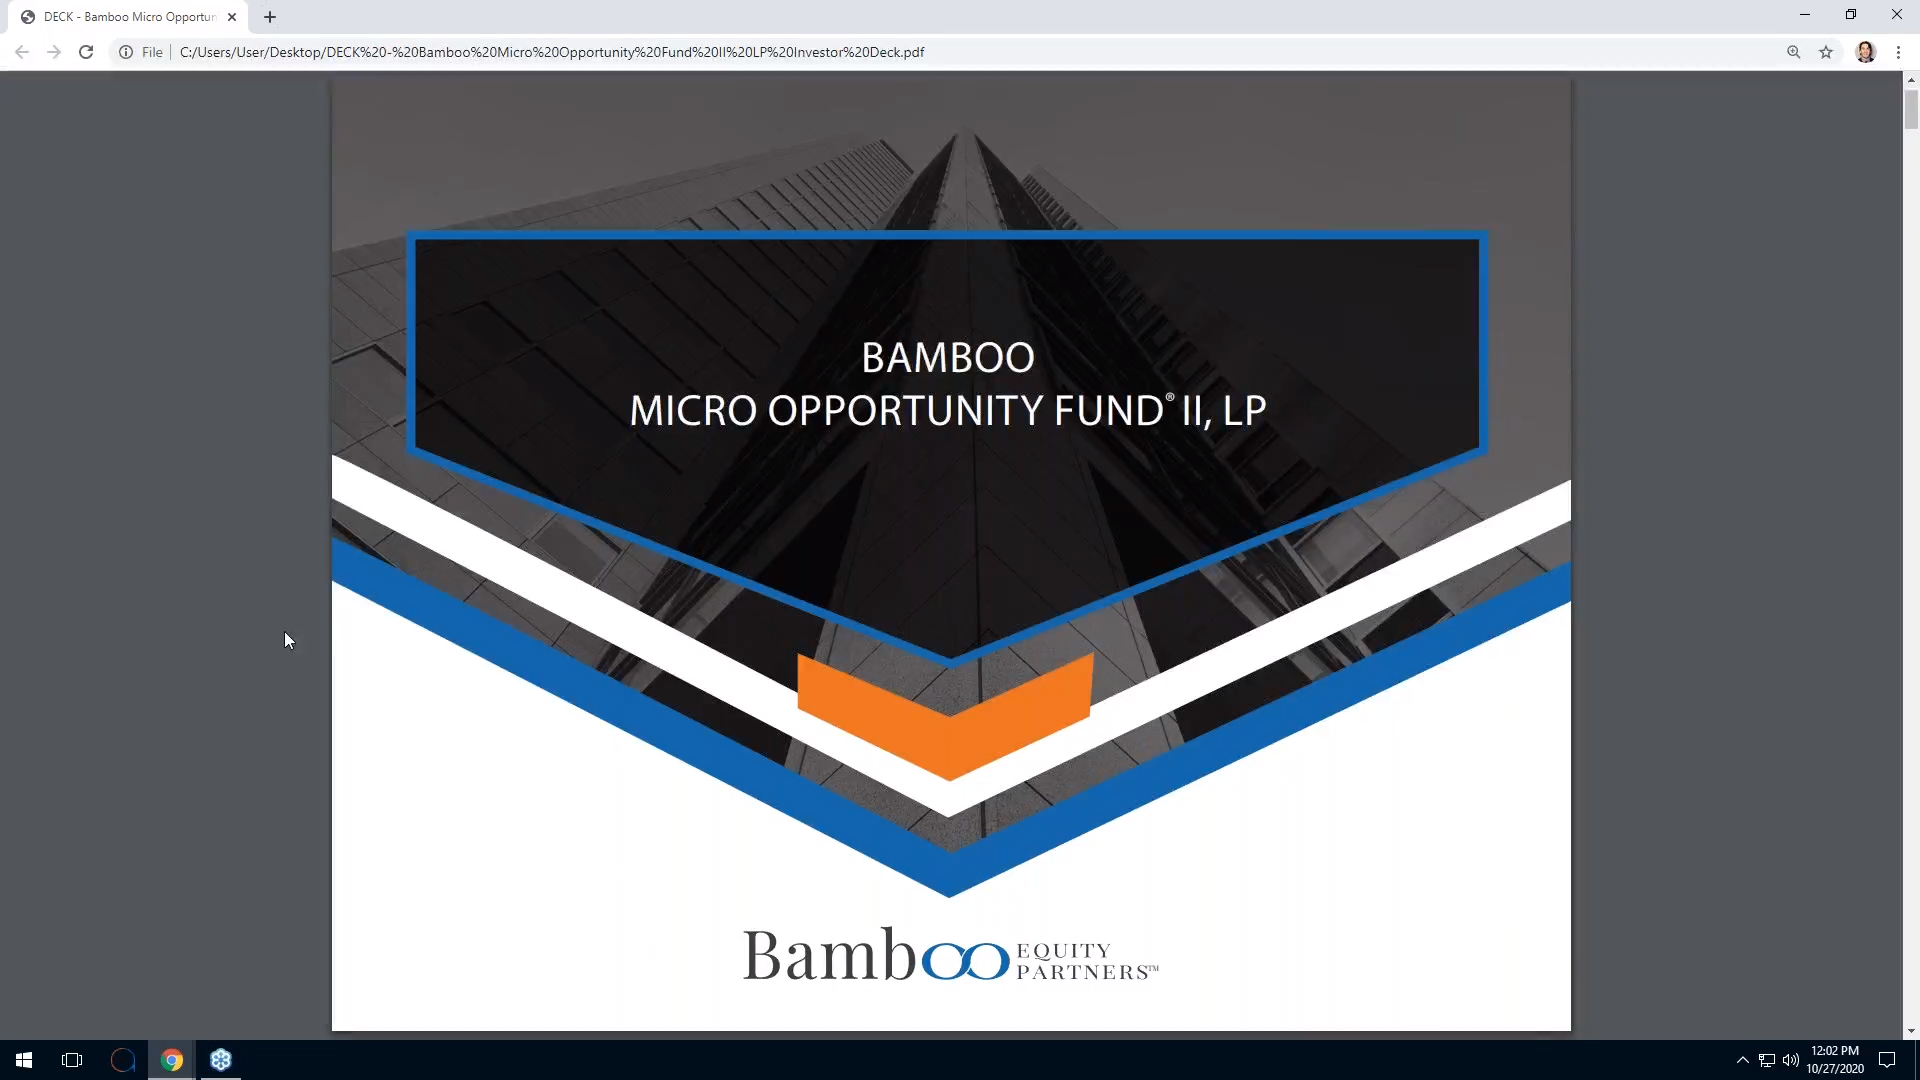 Investment Video - Bamboo Micro Opportunity Fund II, LP